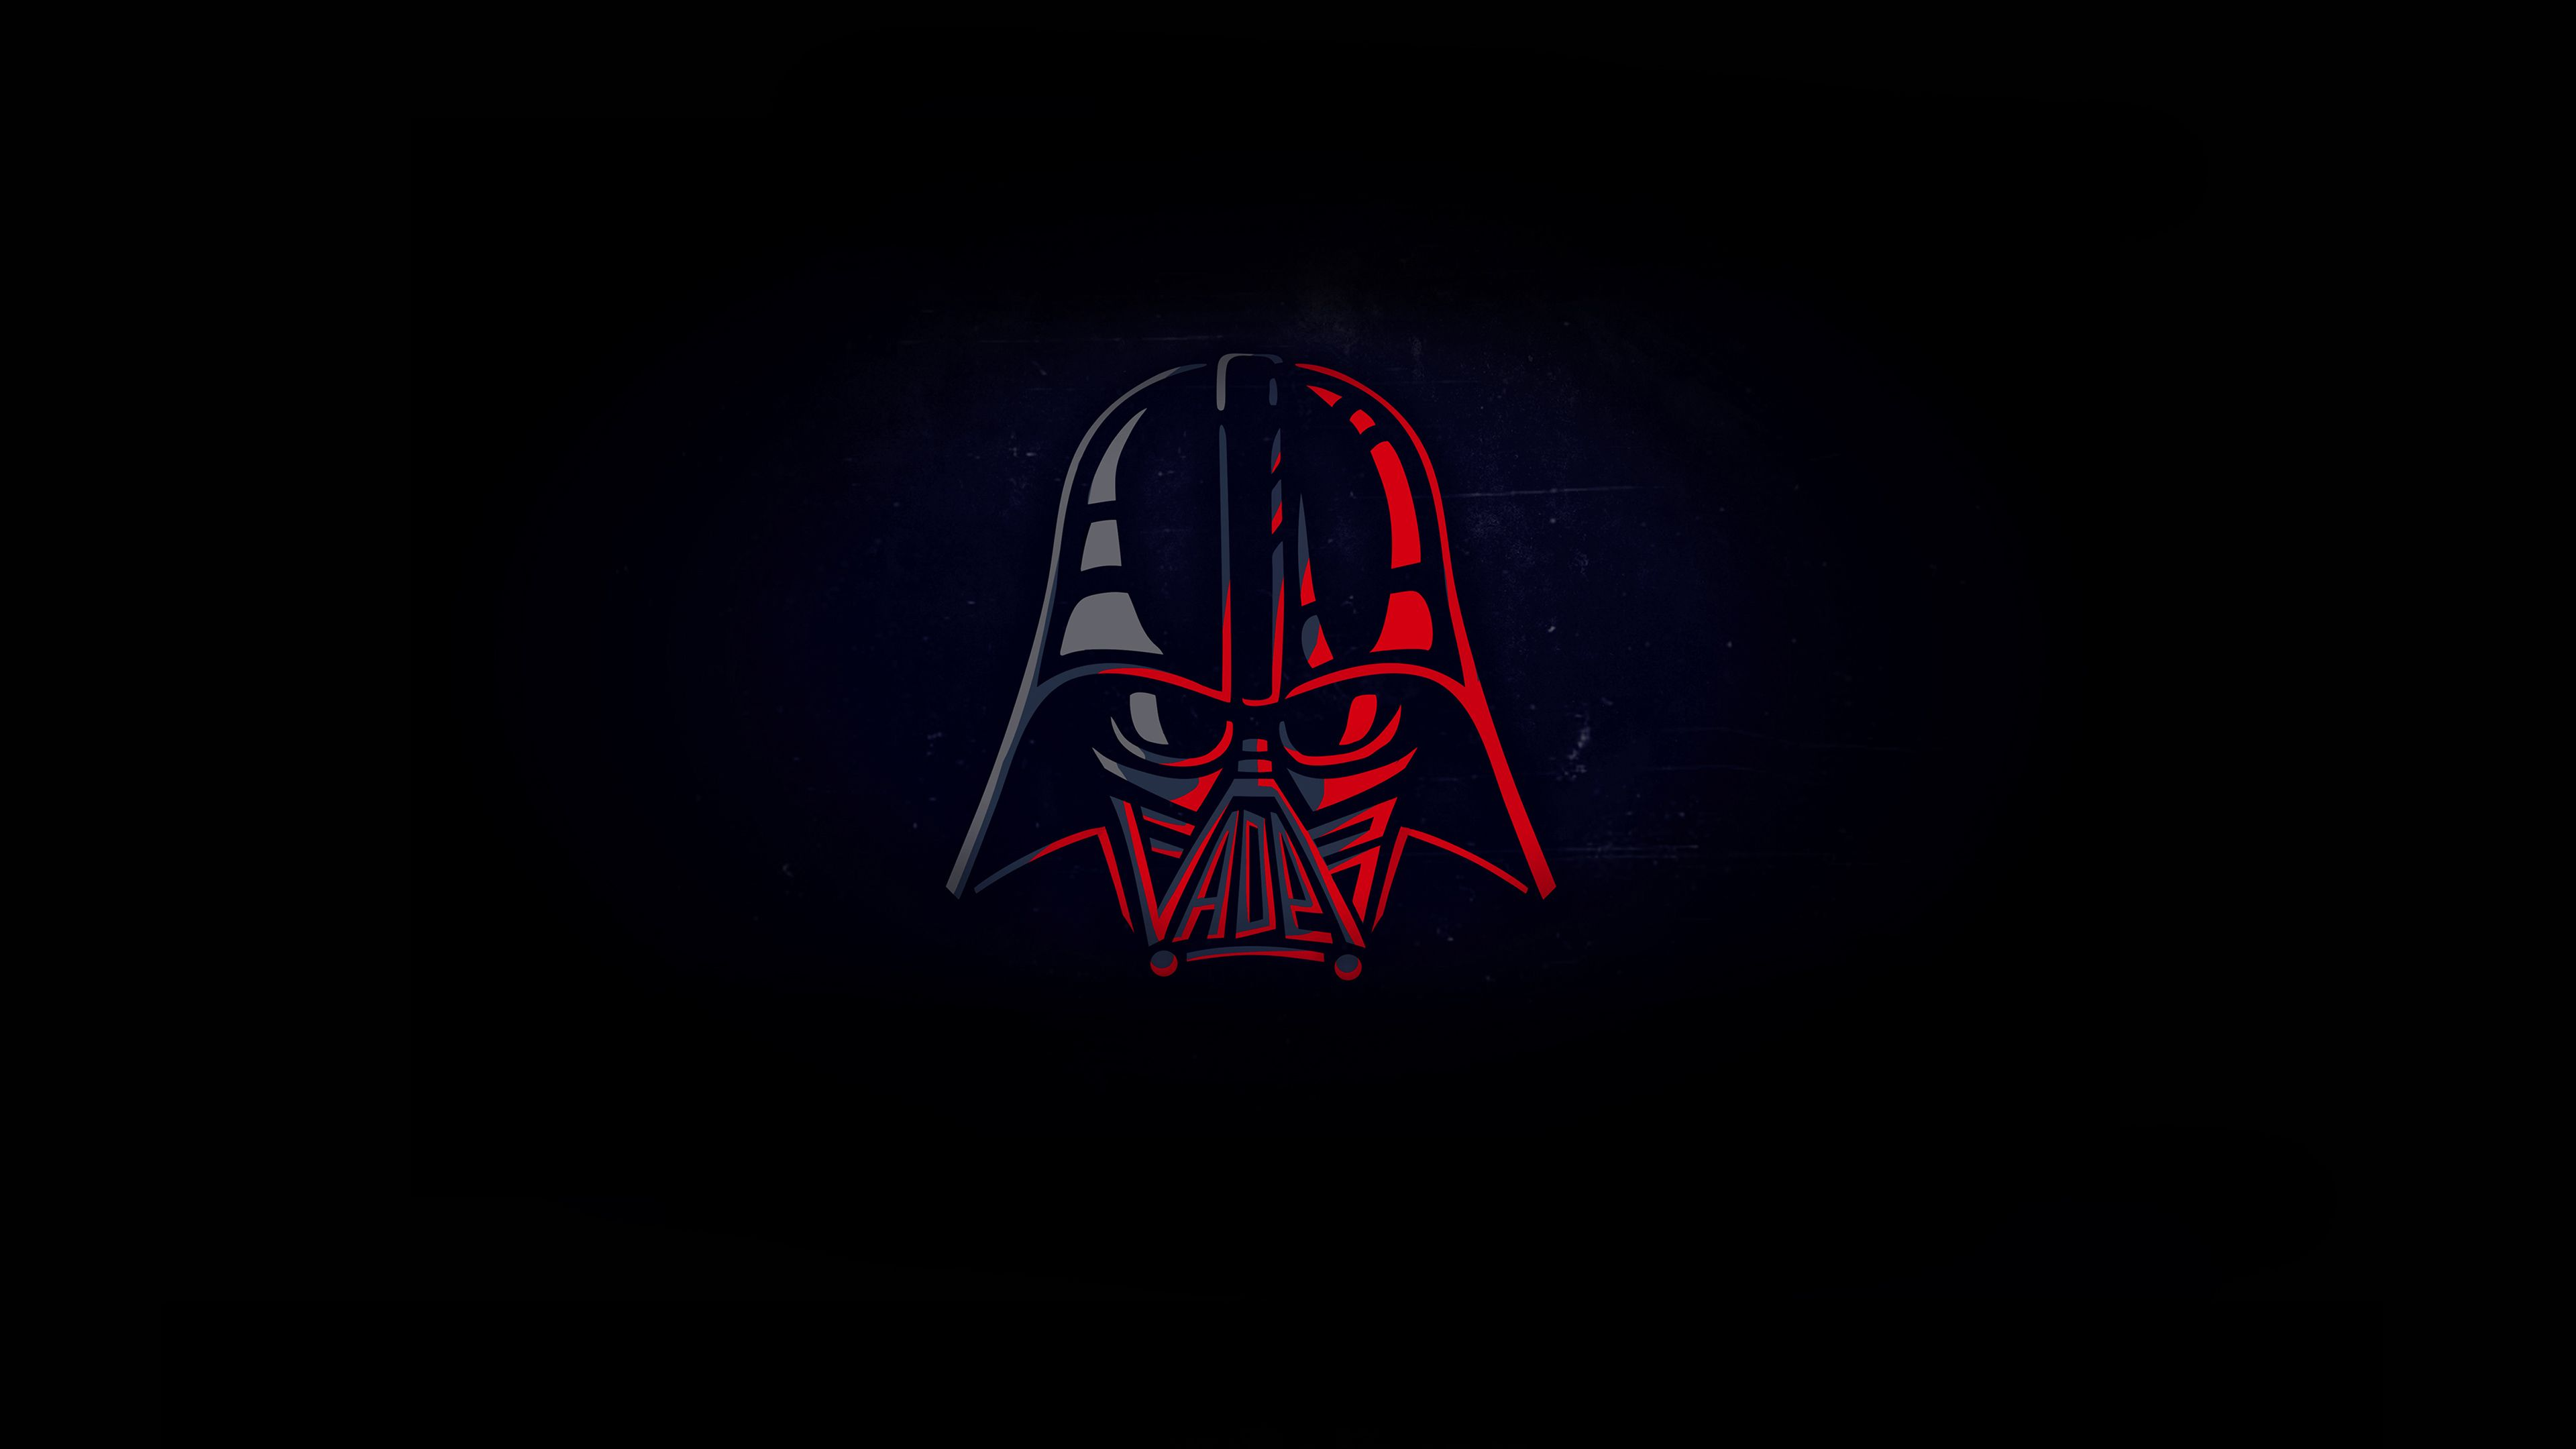 Darth Vader Minimal 4k Star Wars Wallpapers Minimalist Wallpapers Minimalism Wallpapers Hd Wa Darth Vader Wallpaper Star Wars Wallpaper Star Wars Background